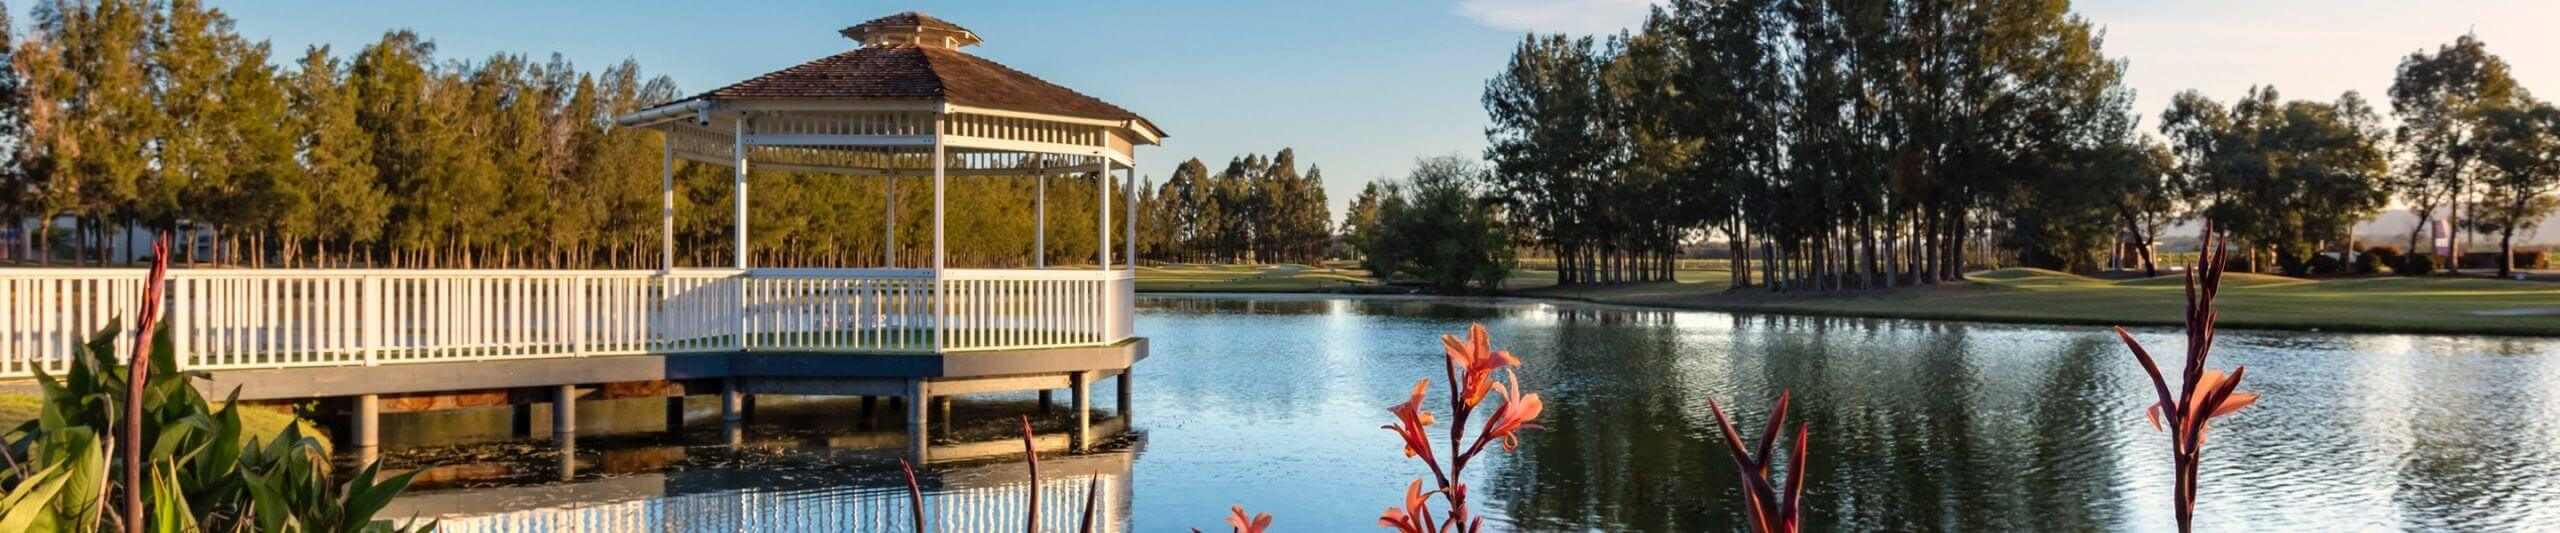 Lakeside wedding venue hunter valley